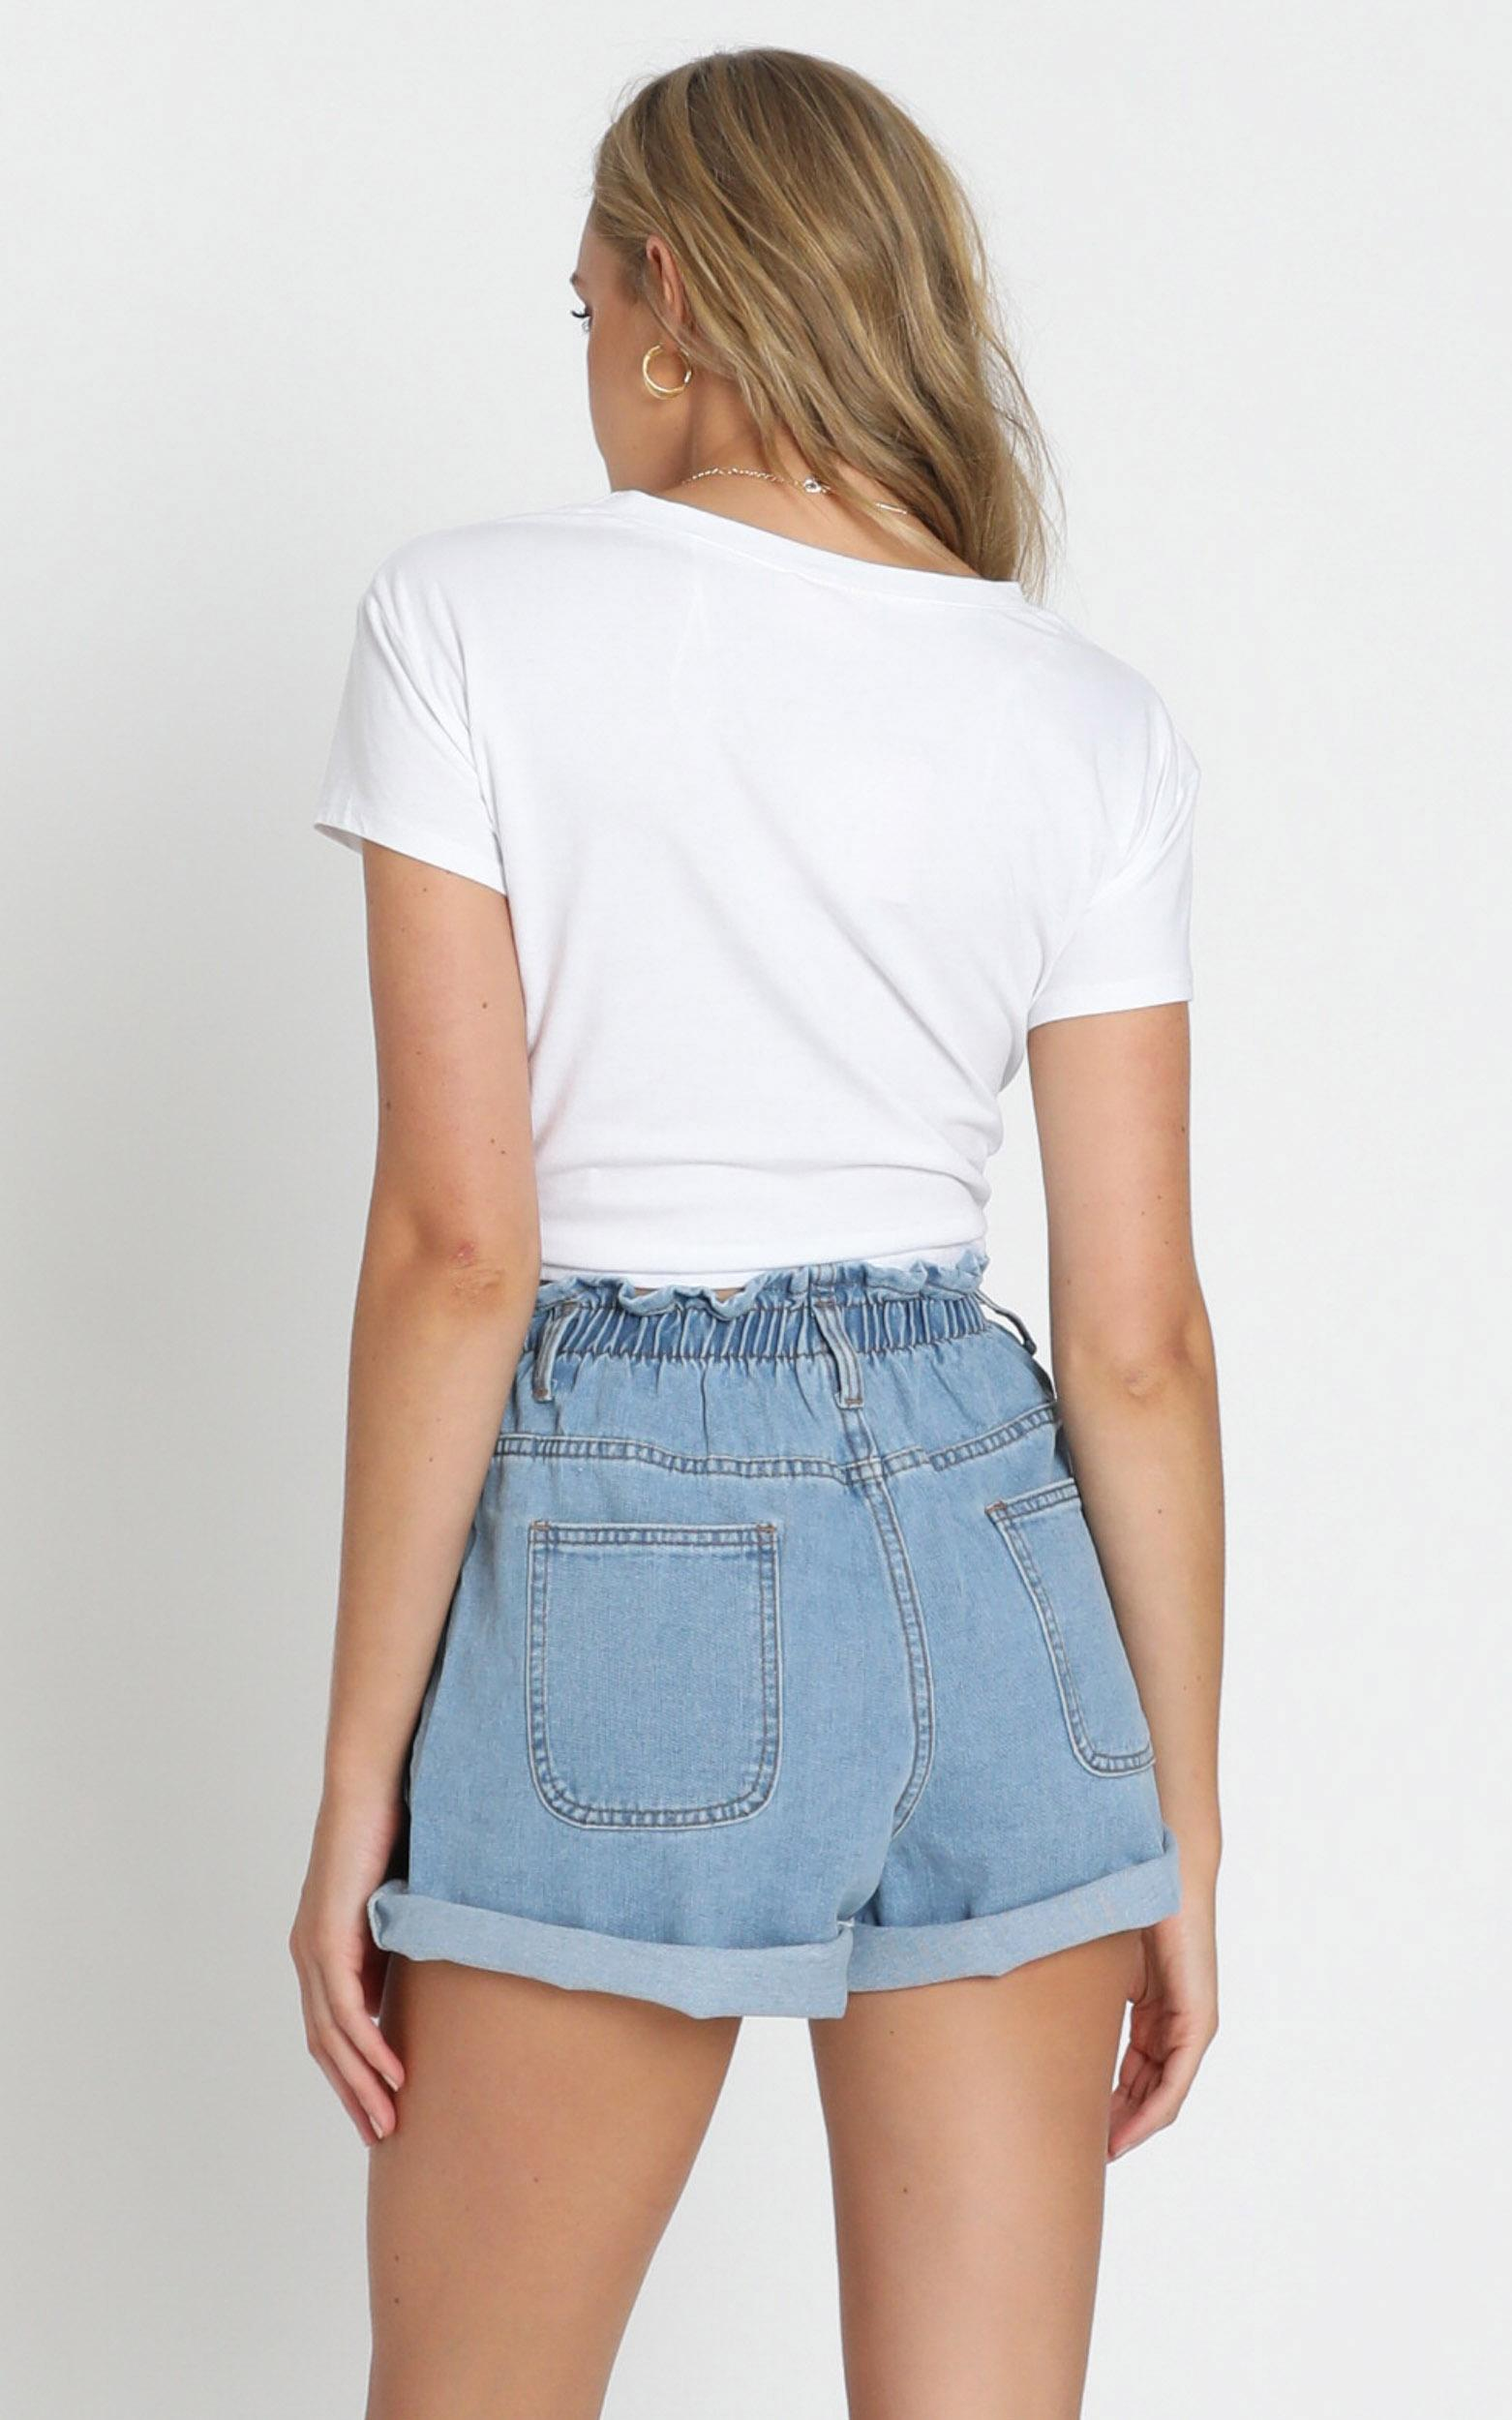 Stomping Ground denim shorts in light wash - 6 (XS), Blue, hi-res image number null